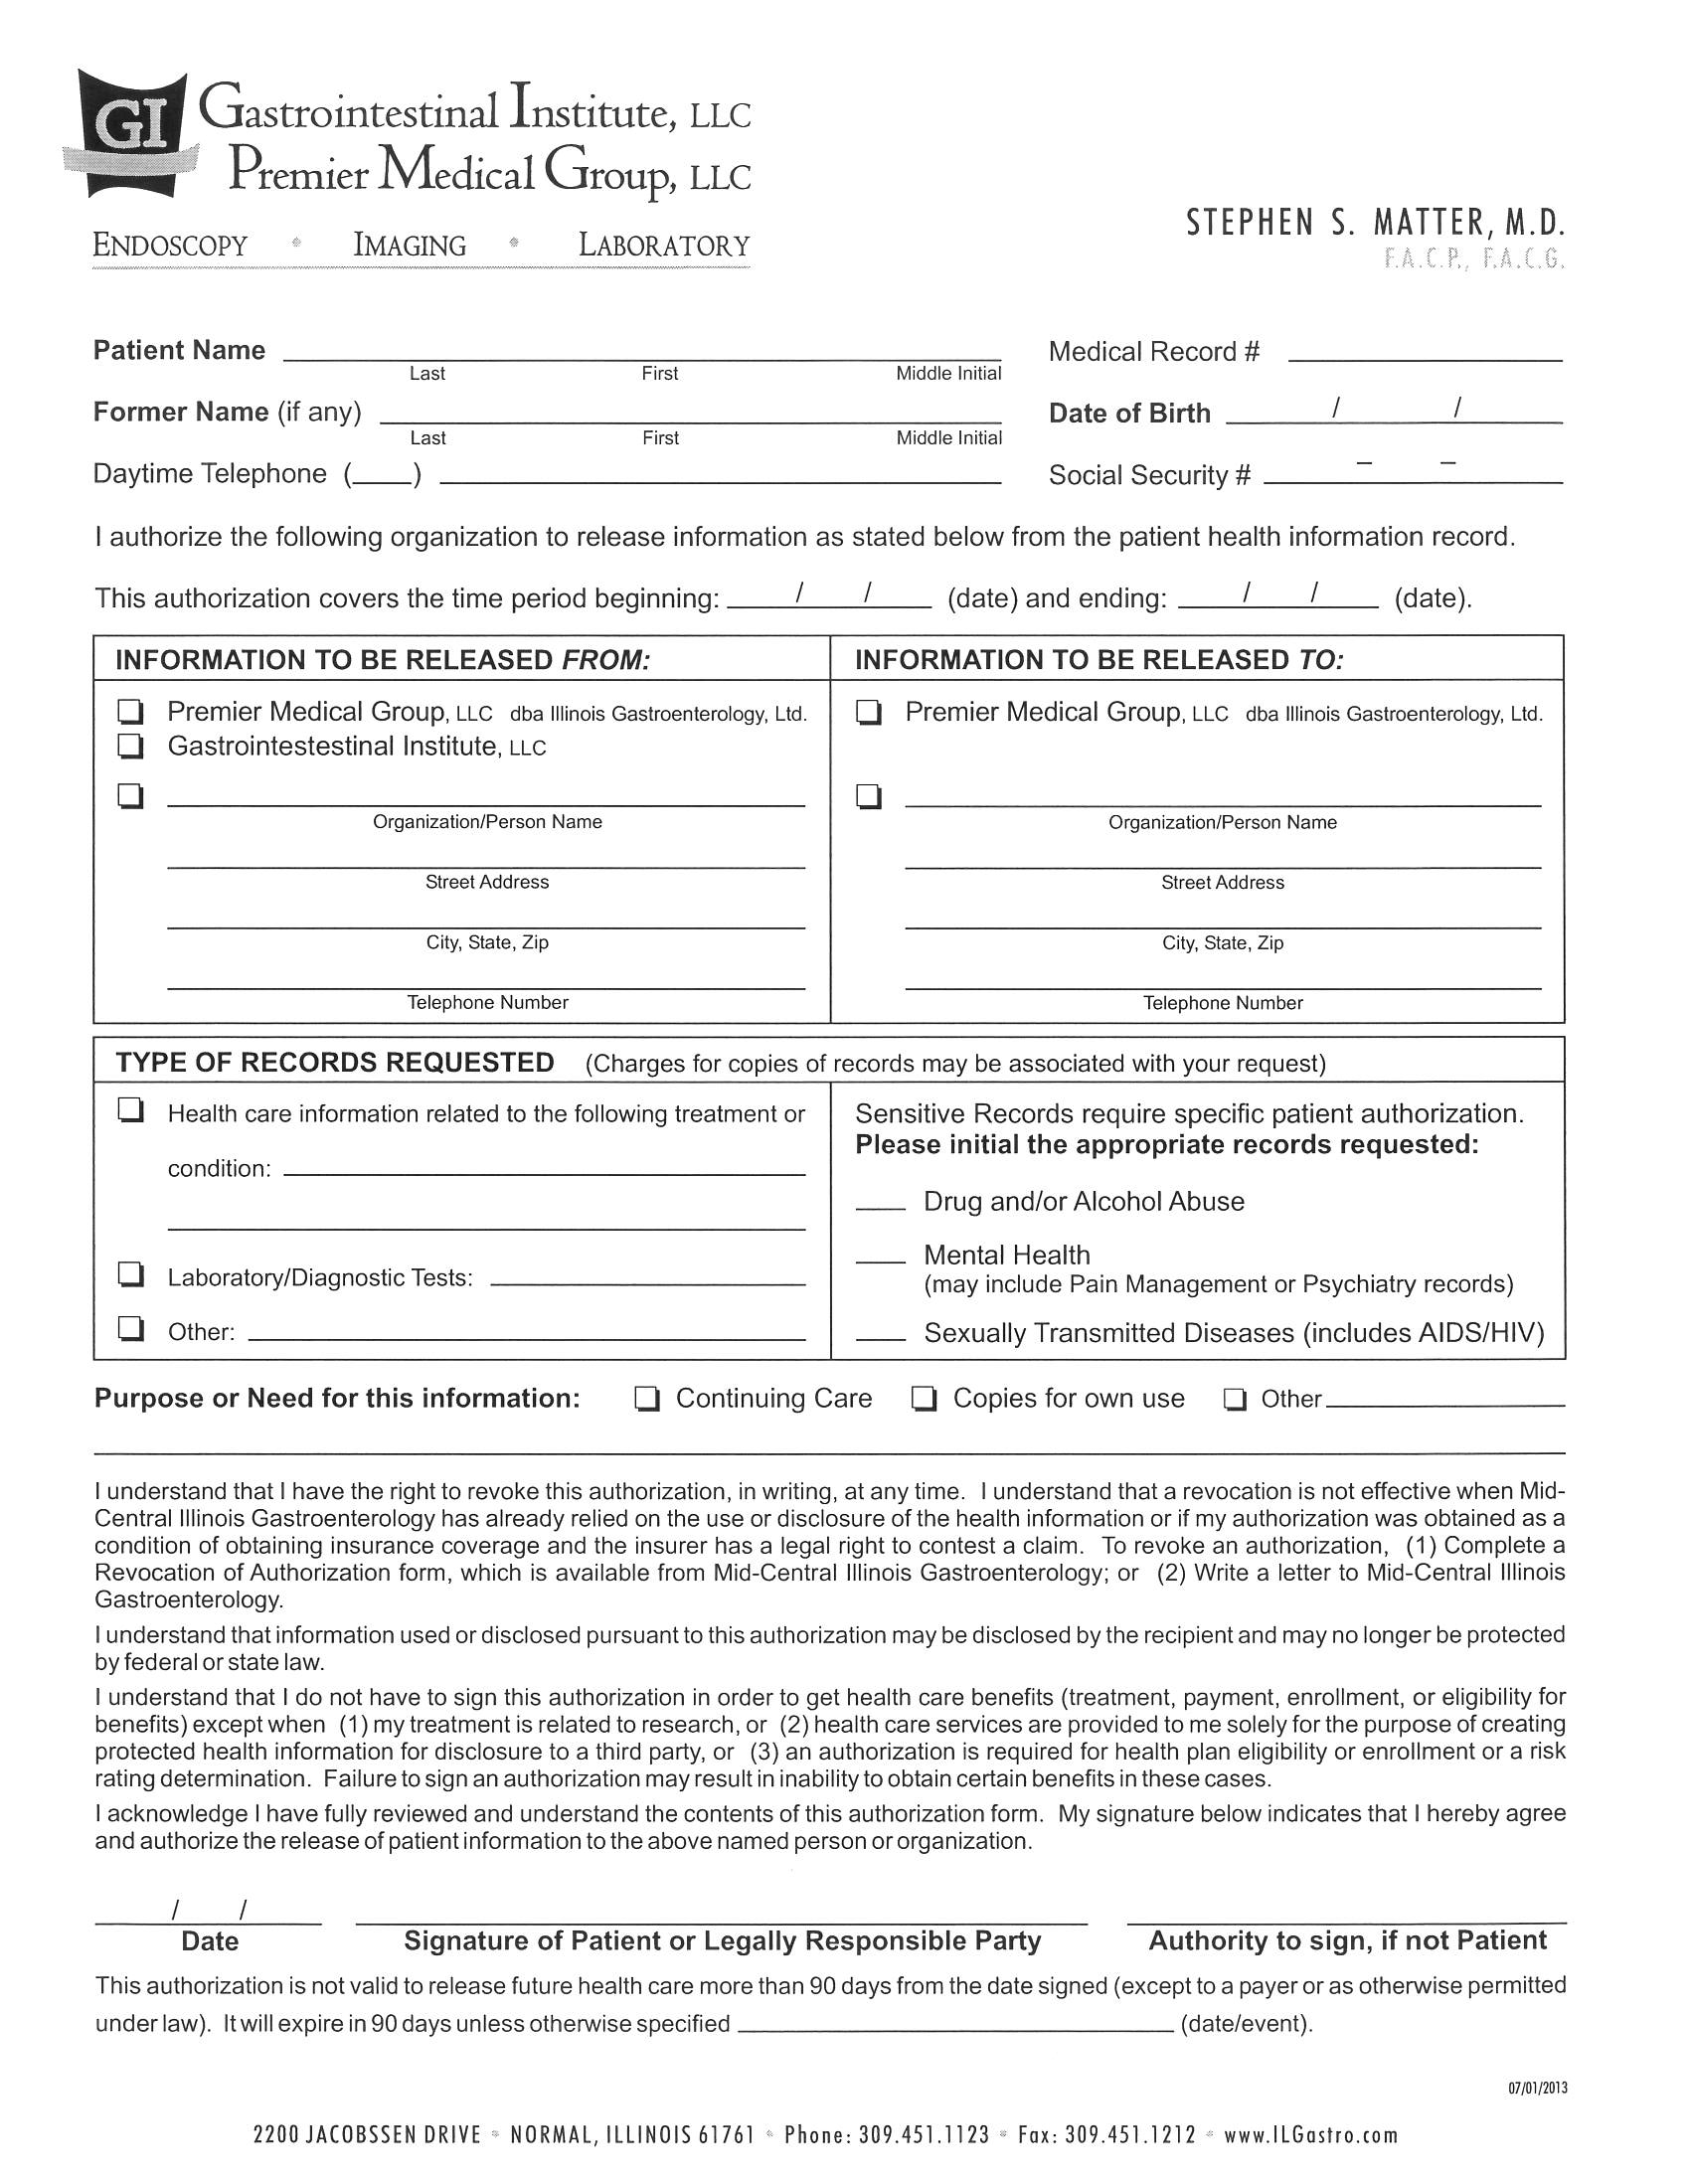 new patient forms gastrointestinal institute llc